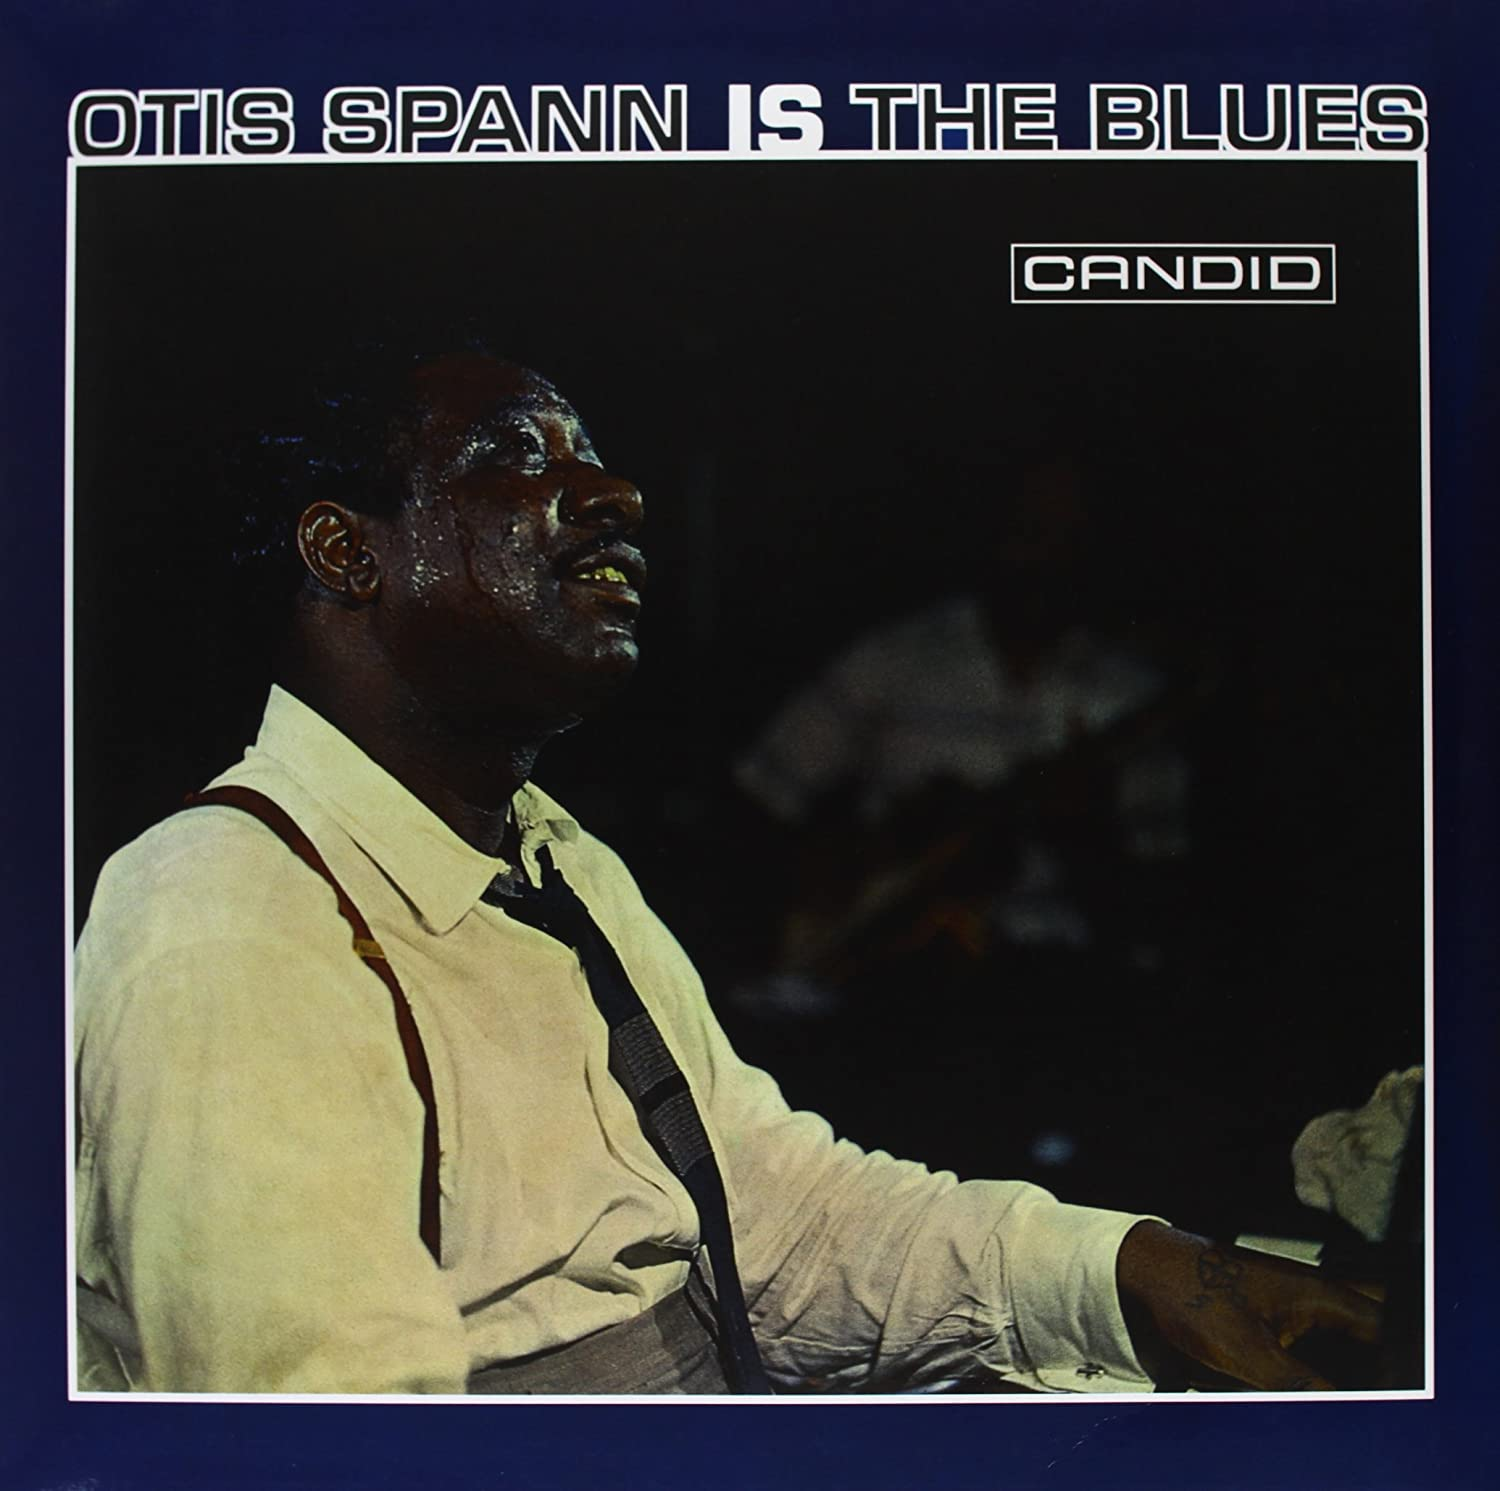 Otis Spann Is the Blues [Vinyl]